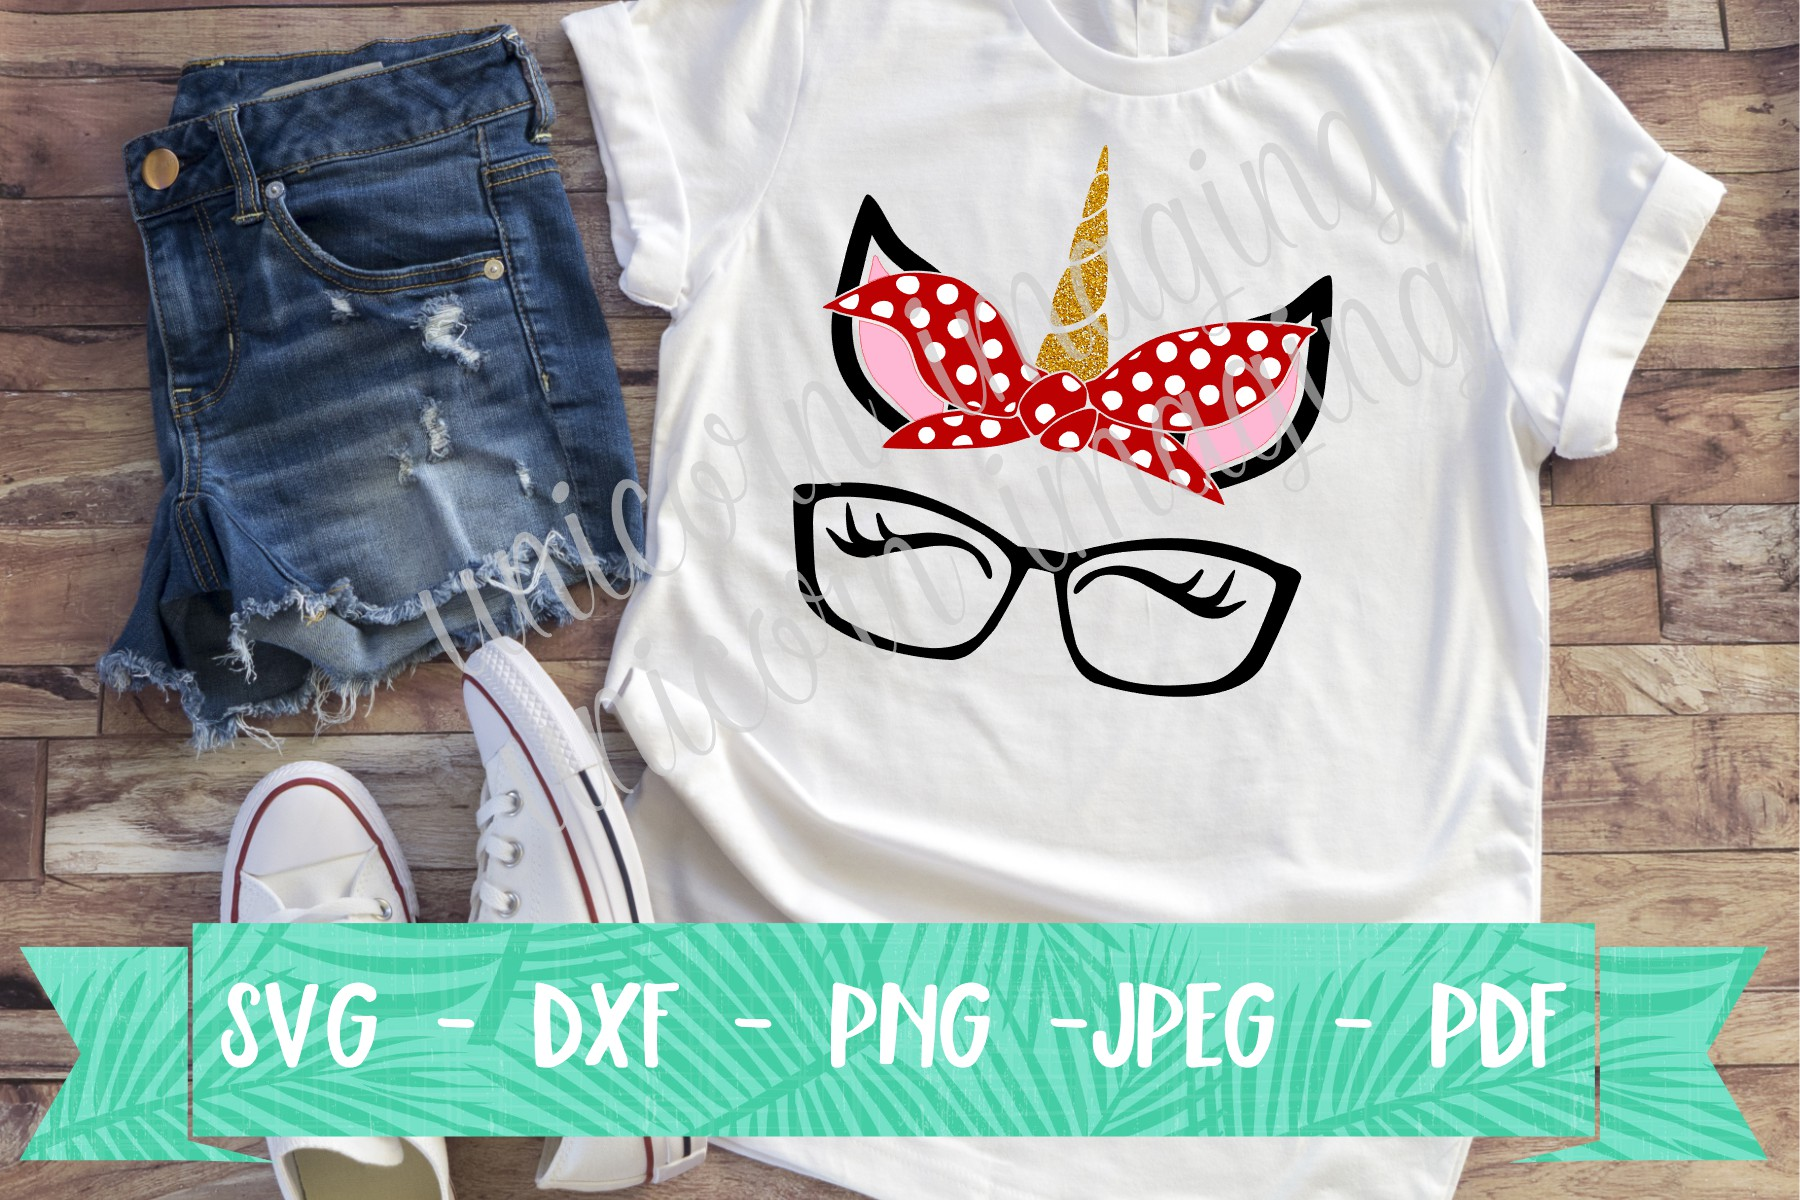 Download Free Unicorn With Bandana And Glasses Graphic By Unicorn Imaging for Cricut Explore, Silhouette and other cutting machines.